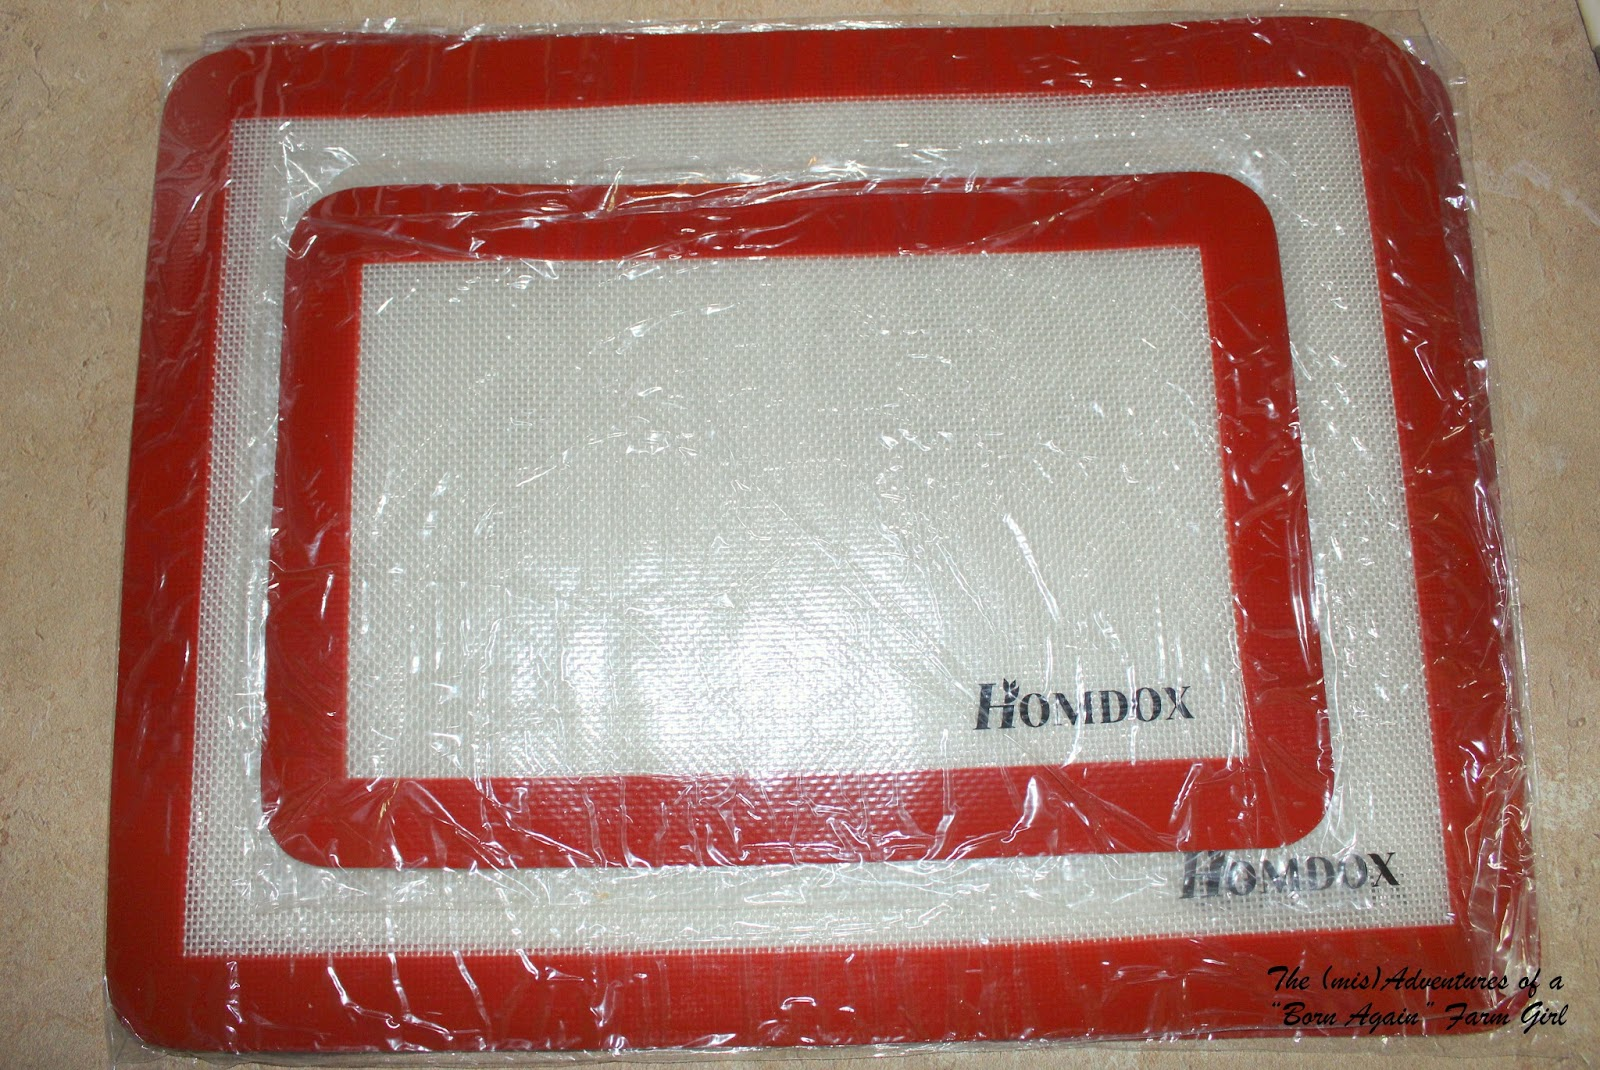 Homdox Silicone Baking Mat Review The Mis Adventures Of